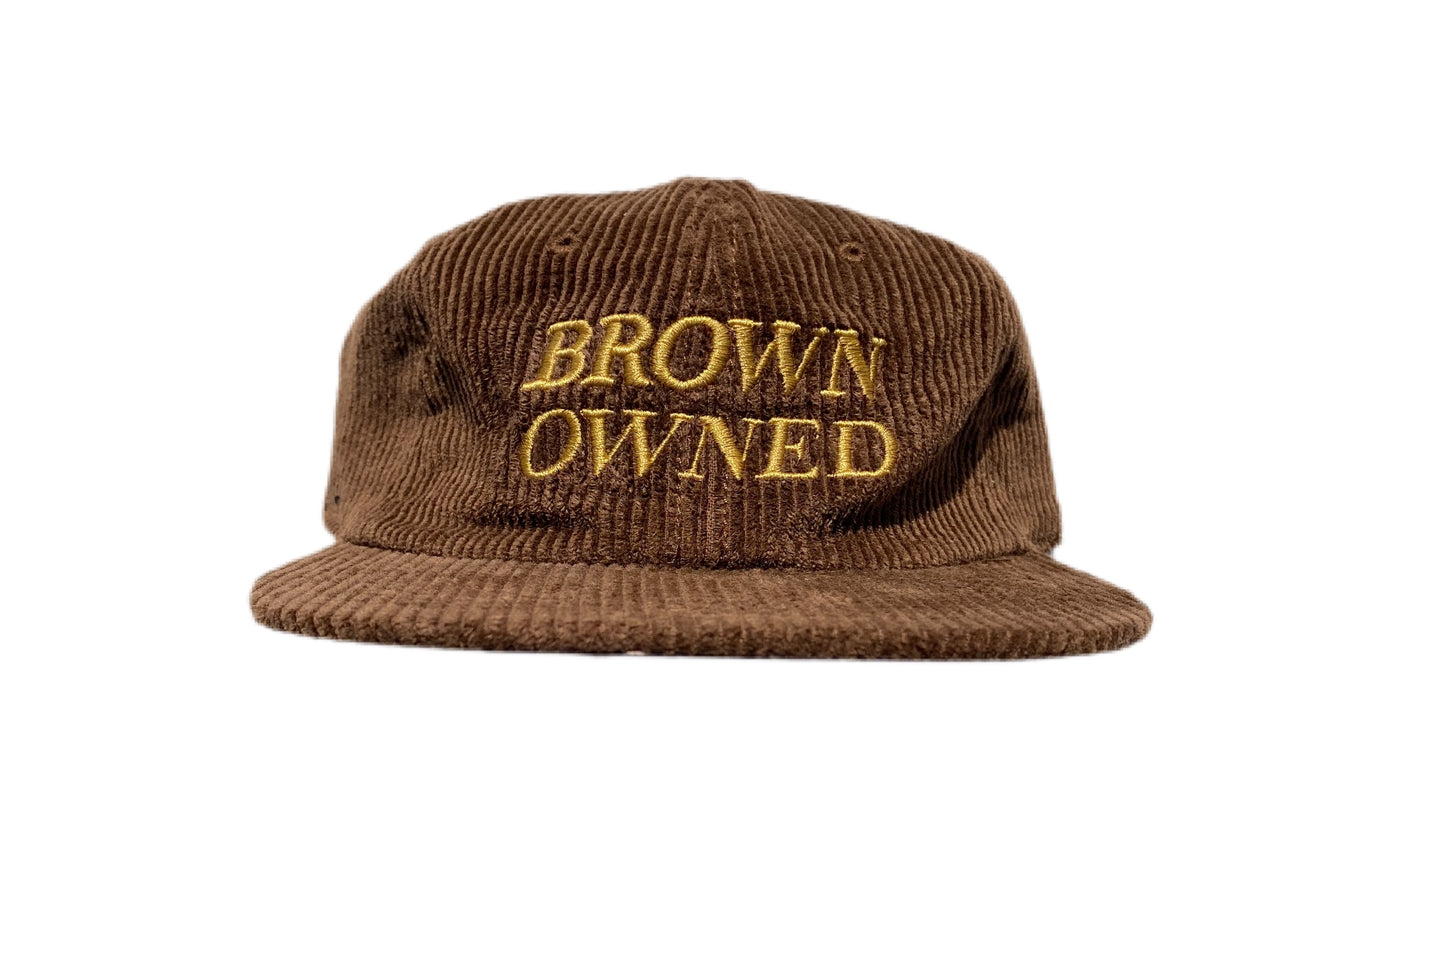 Brown Owned Cord Strapback